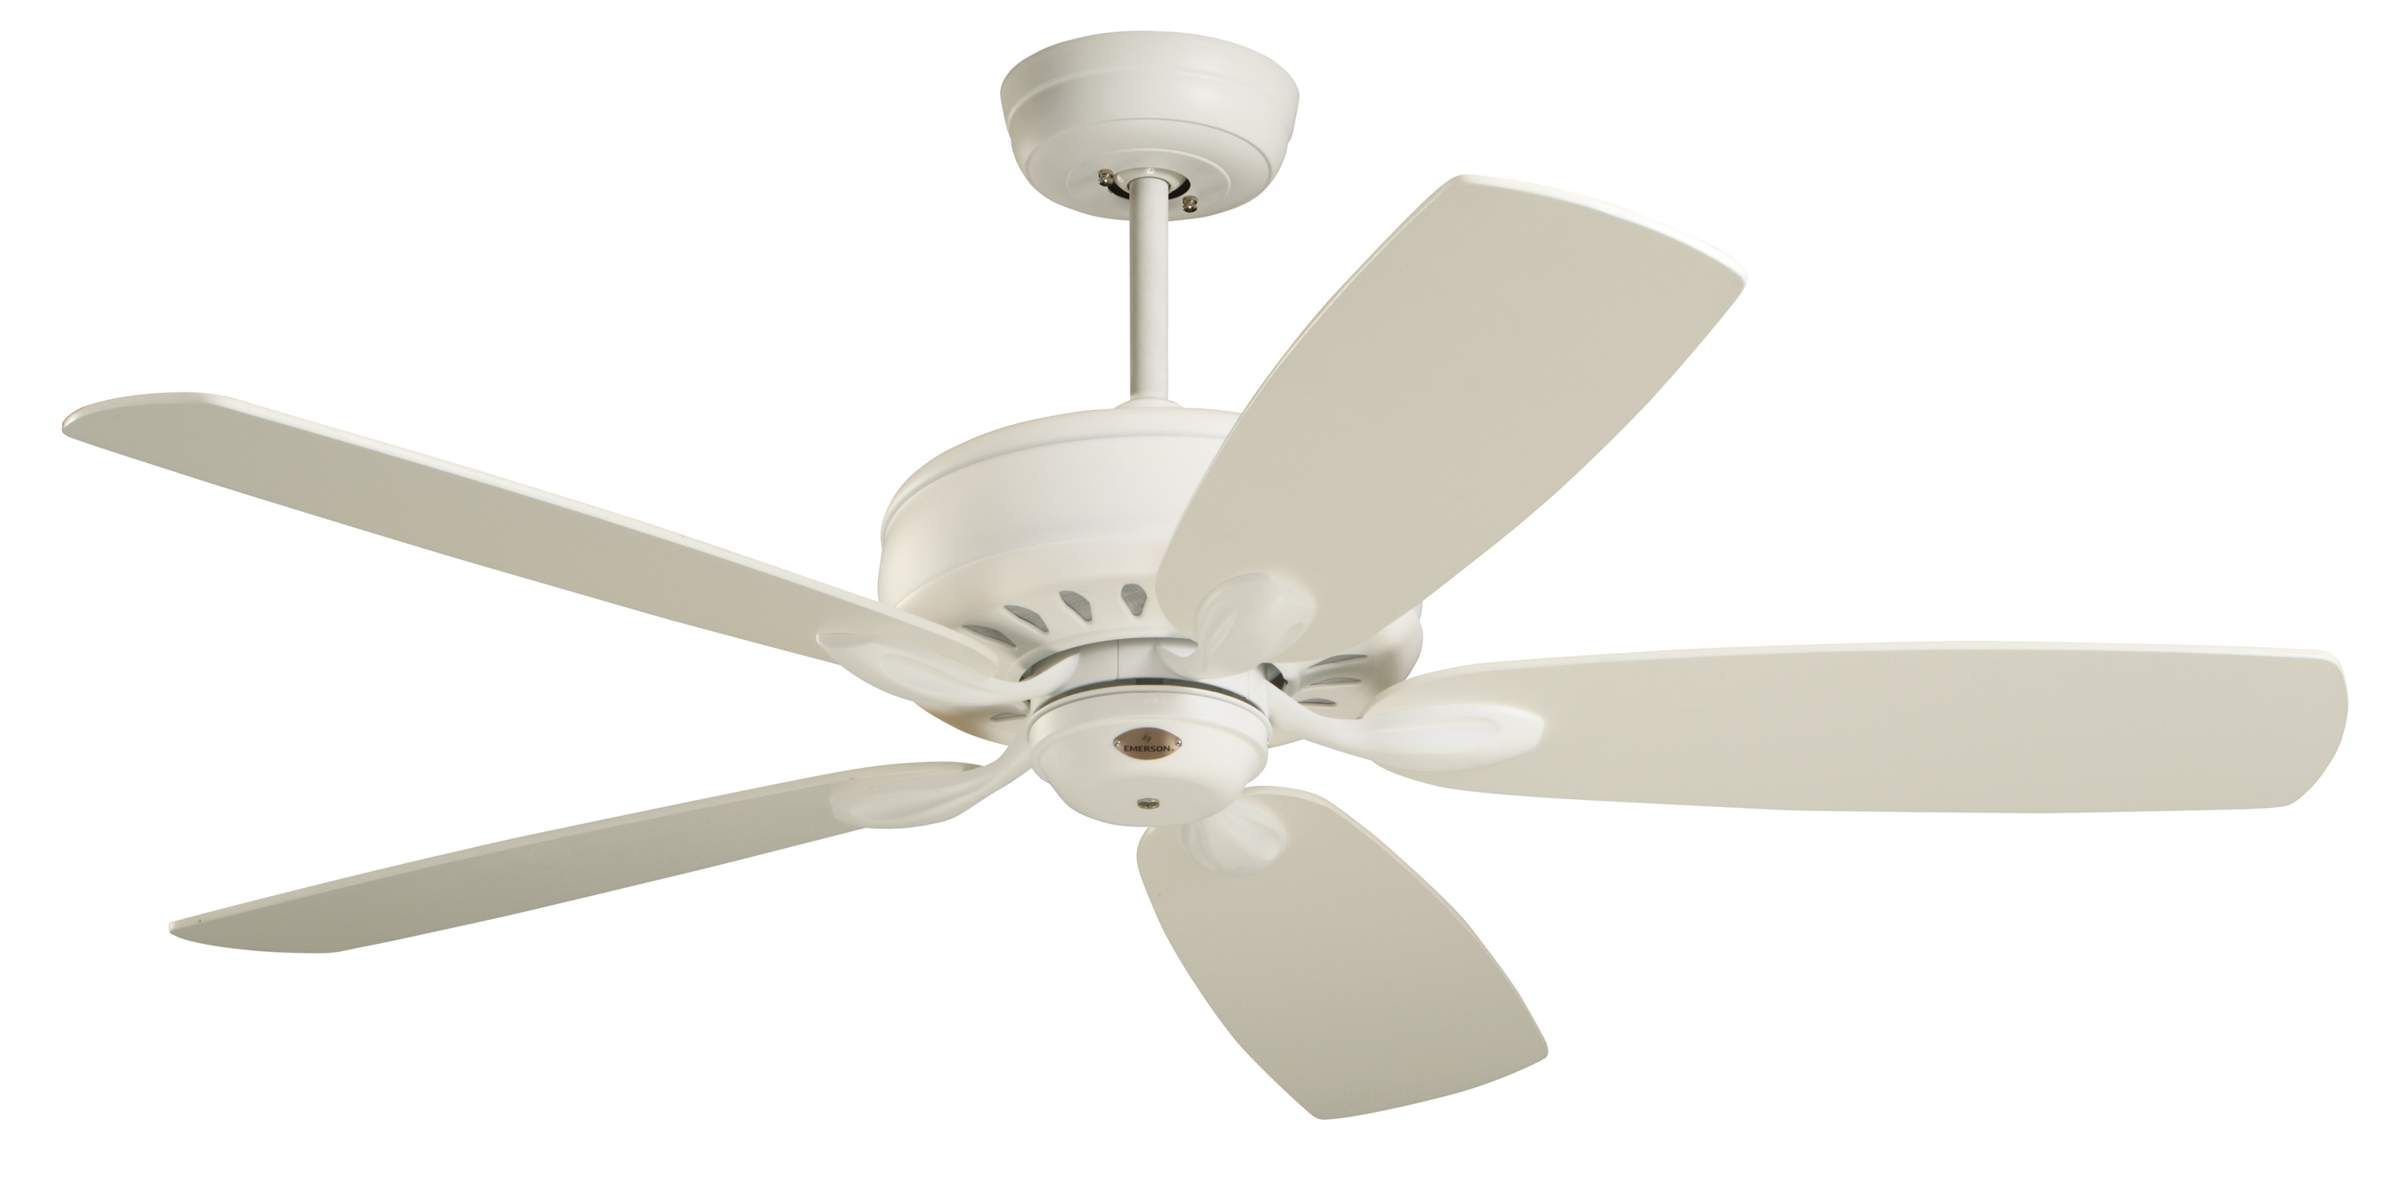 Emerson Avant Eco 5 Blade Energy Star Ceiling Fan With Custom Op Satin White Fans Indoor